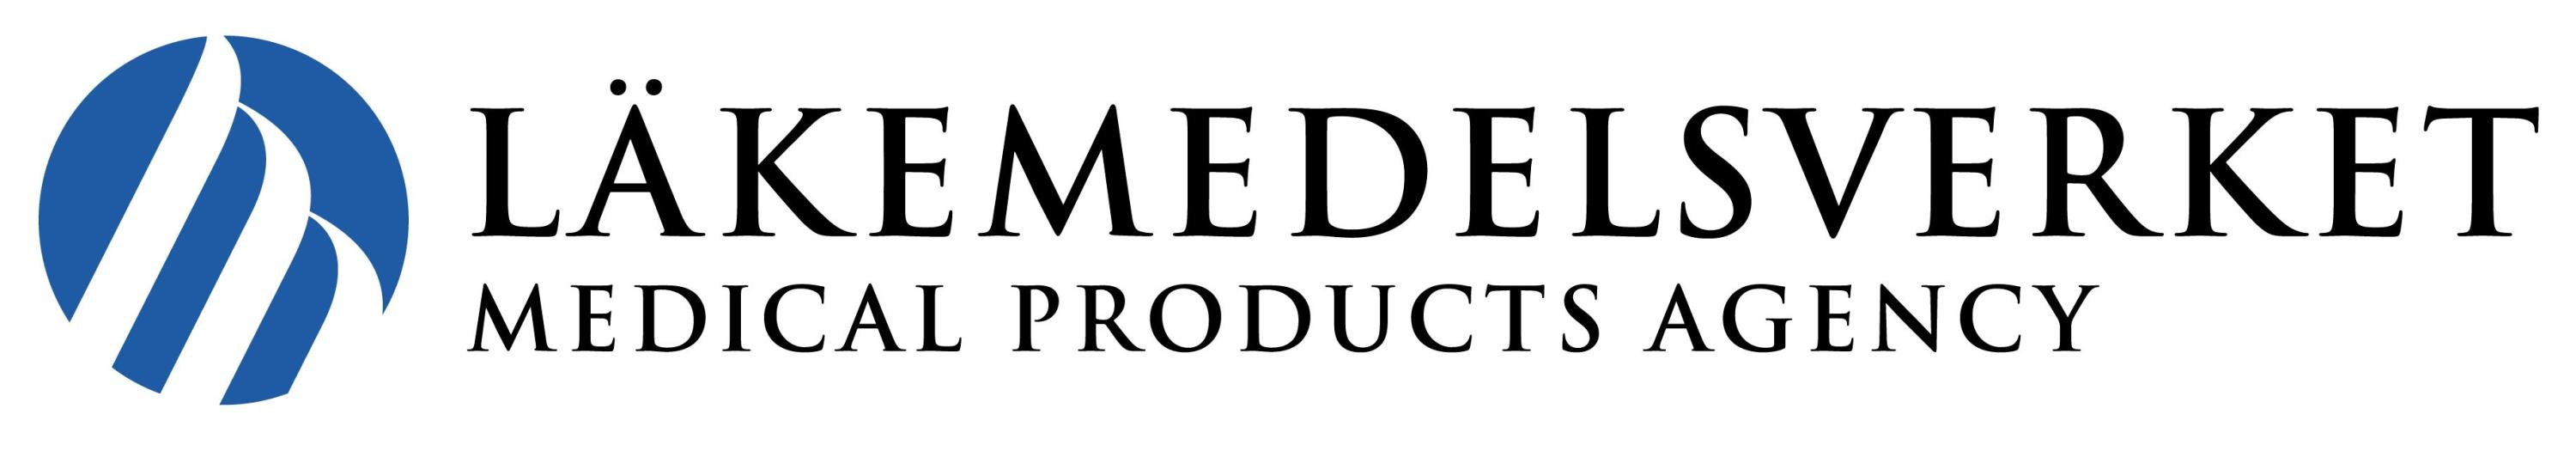 Medical Products Agency